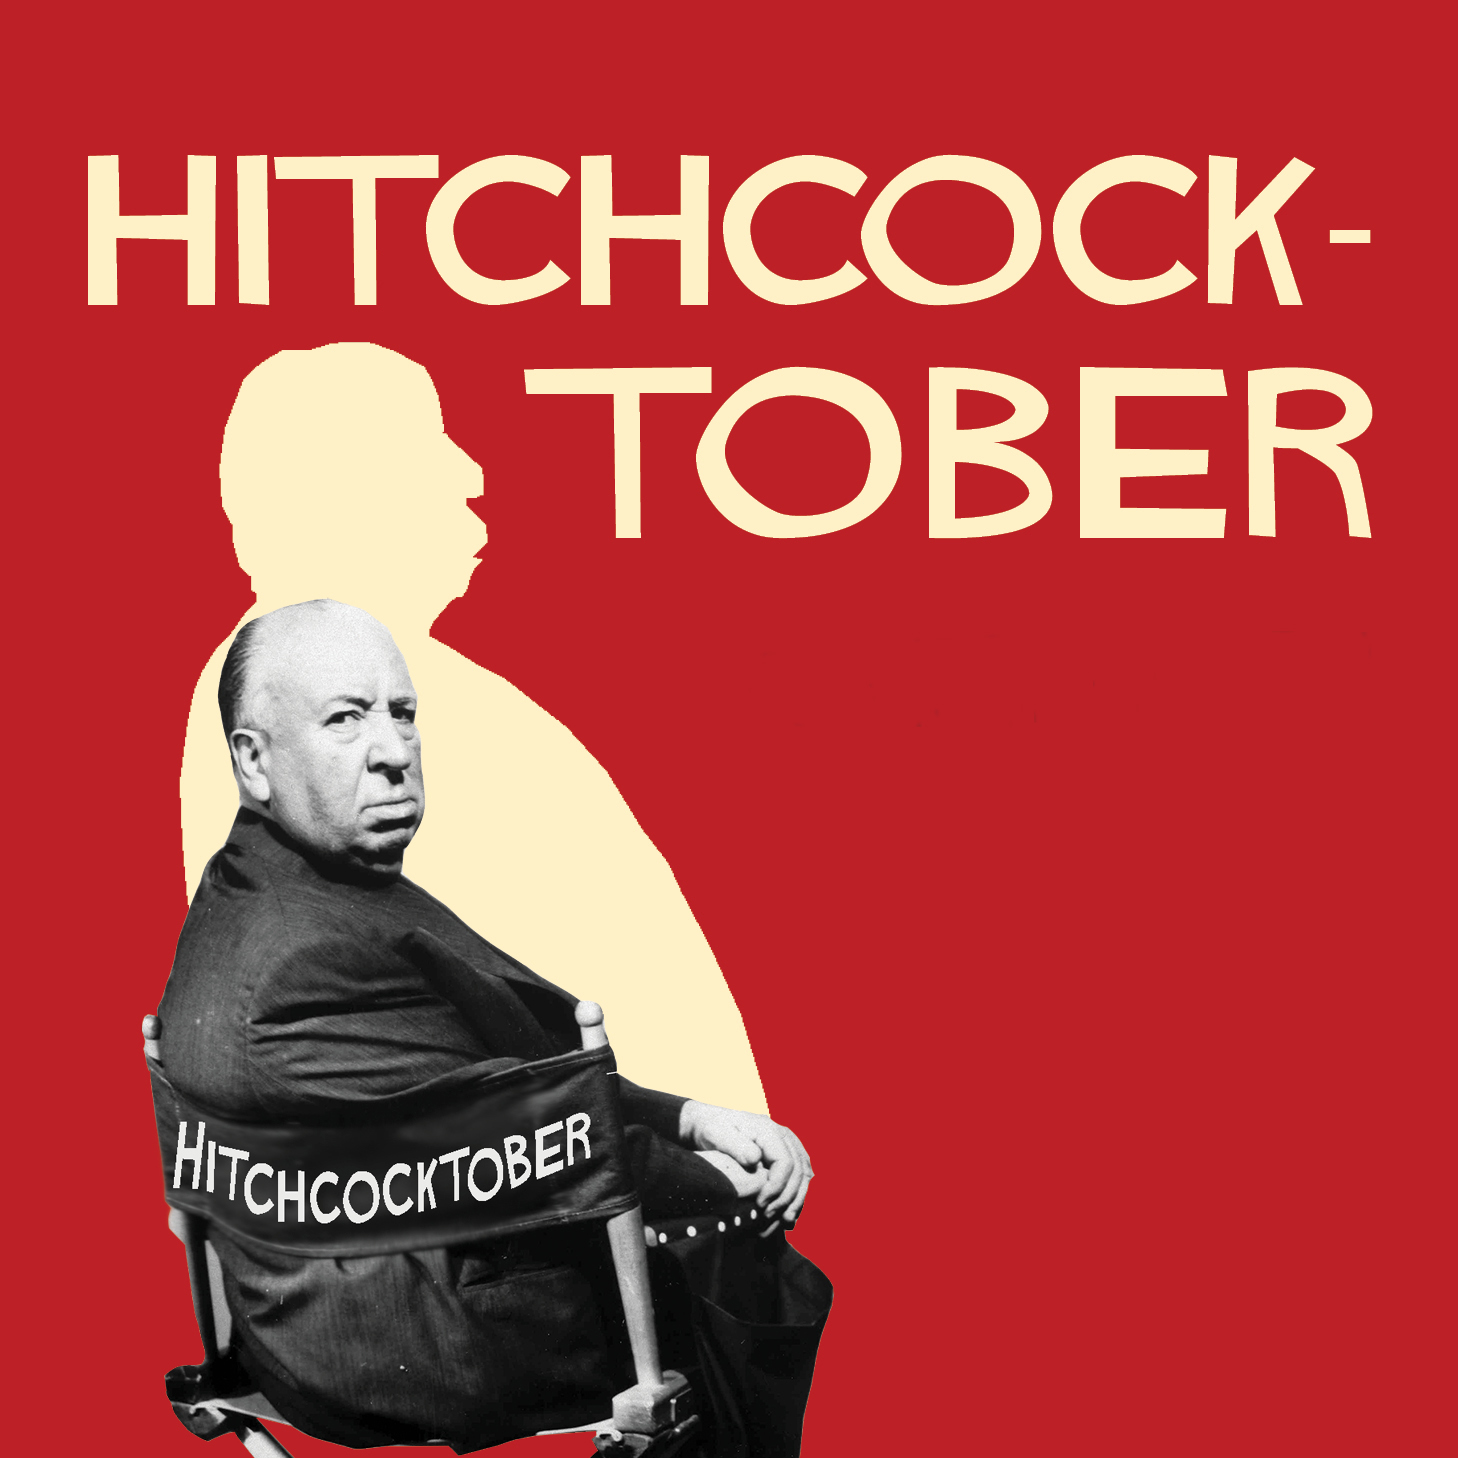 hitchcocktober_2018_no_dates.jpg